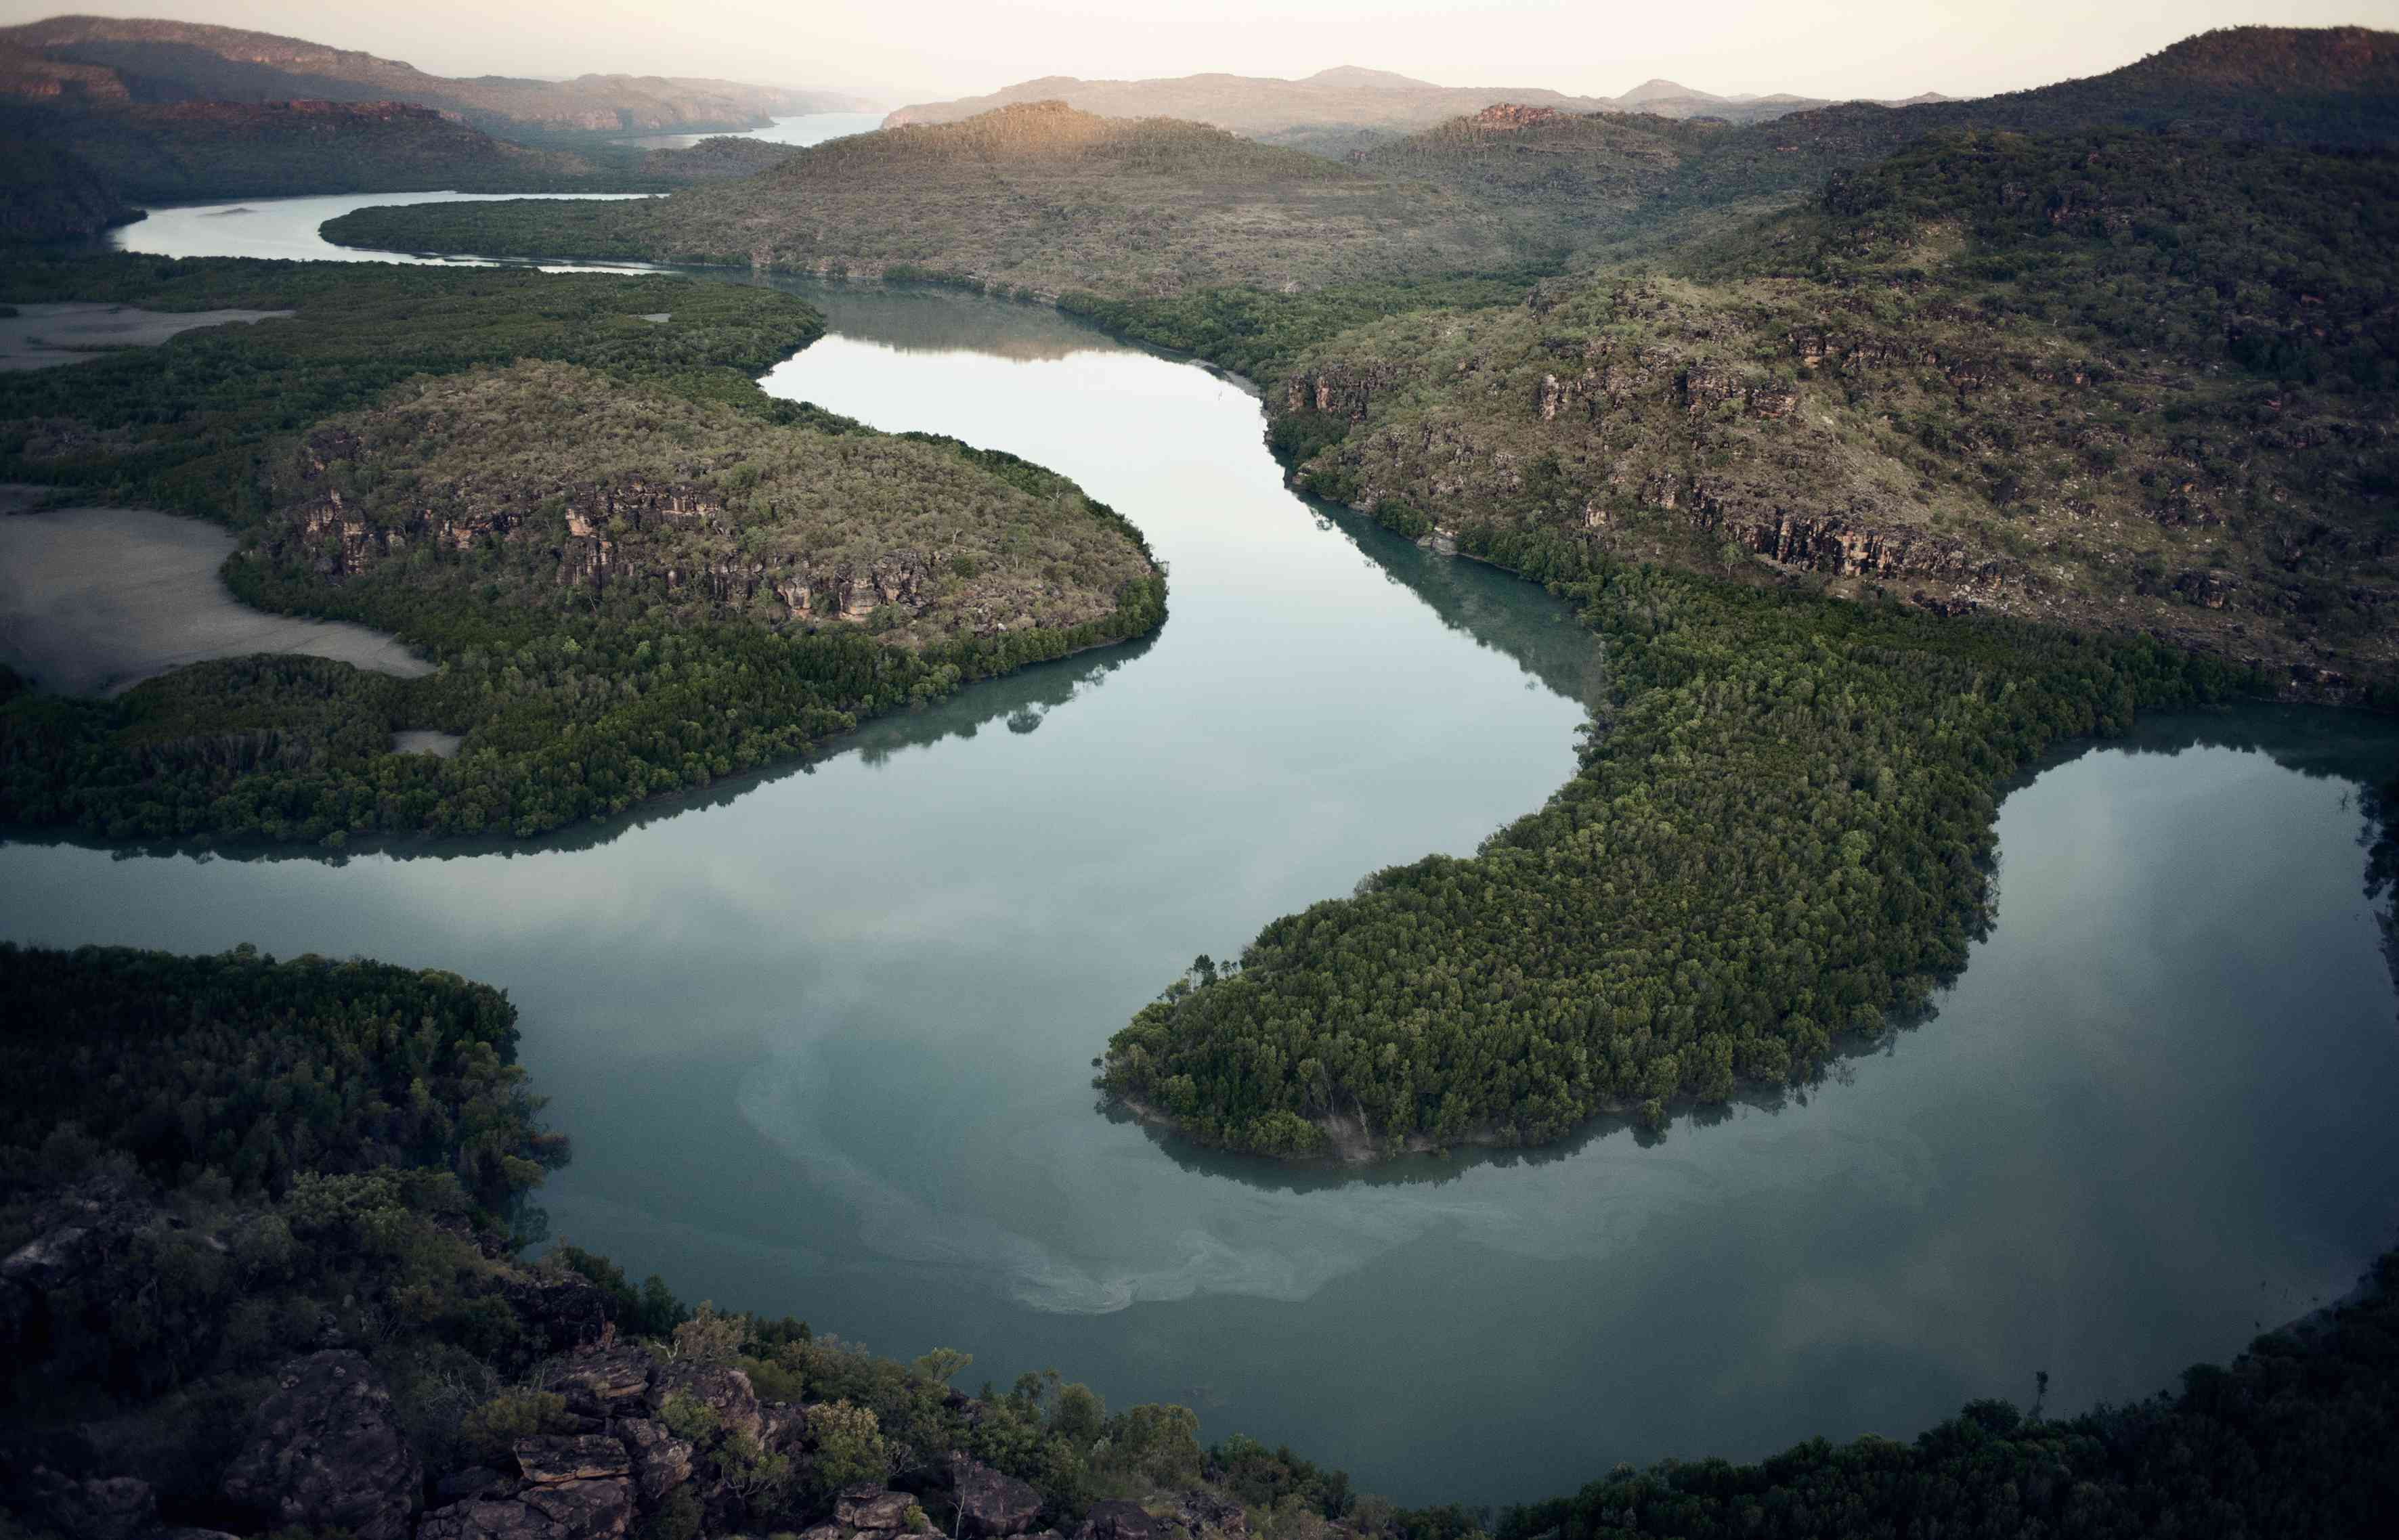 Hunter River estuary, Kimberley, Australia. © Peter & Beverly Pickford, from Wild Land by Peter & Beverly Pickford.